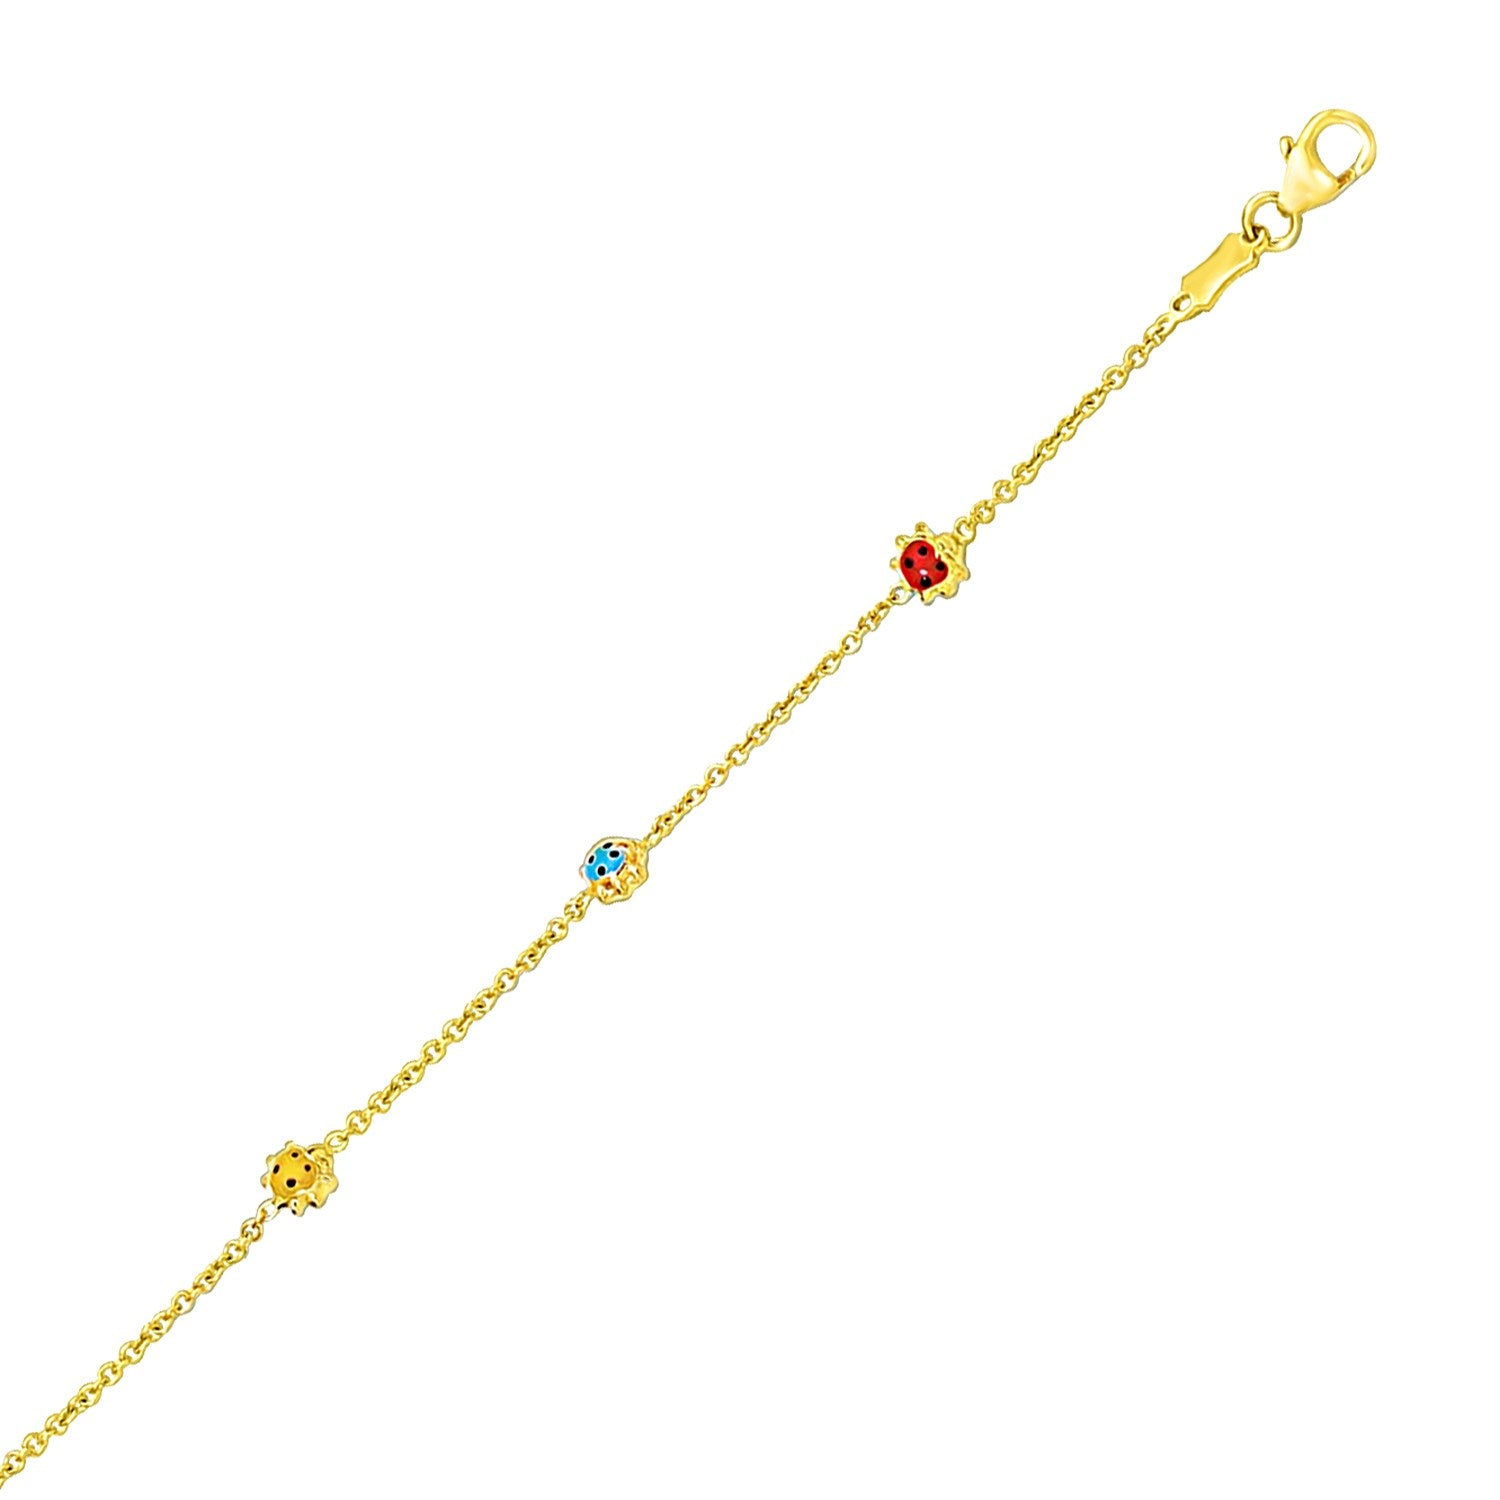 14k Yellow Gold Chain Bracelet with Multi-Tone Ladybug Stations